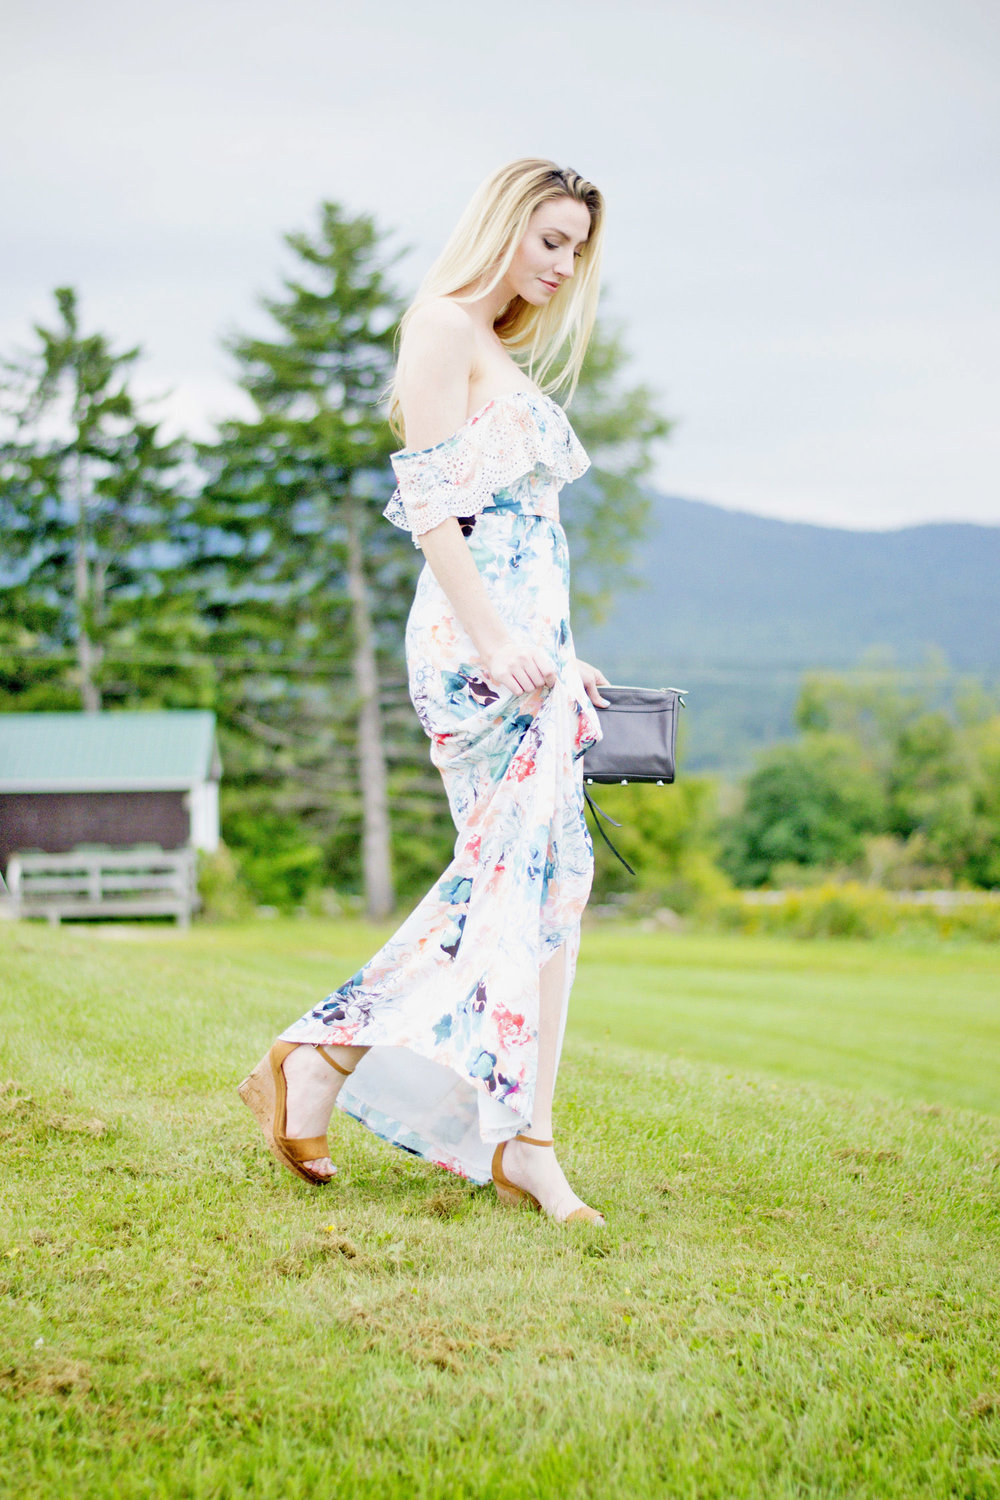 Floral Off-The-Shoulder Maxi Dress (via Chic Now)